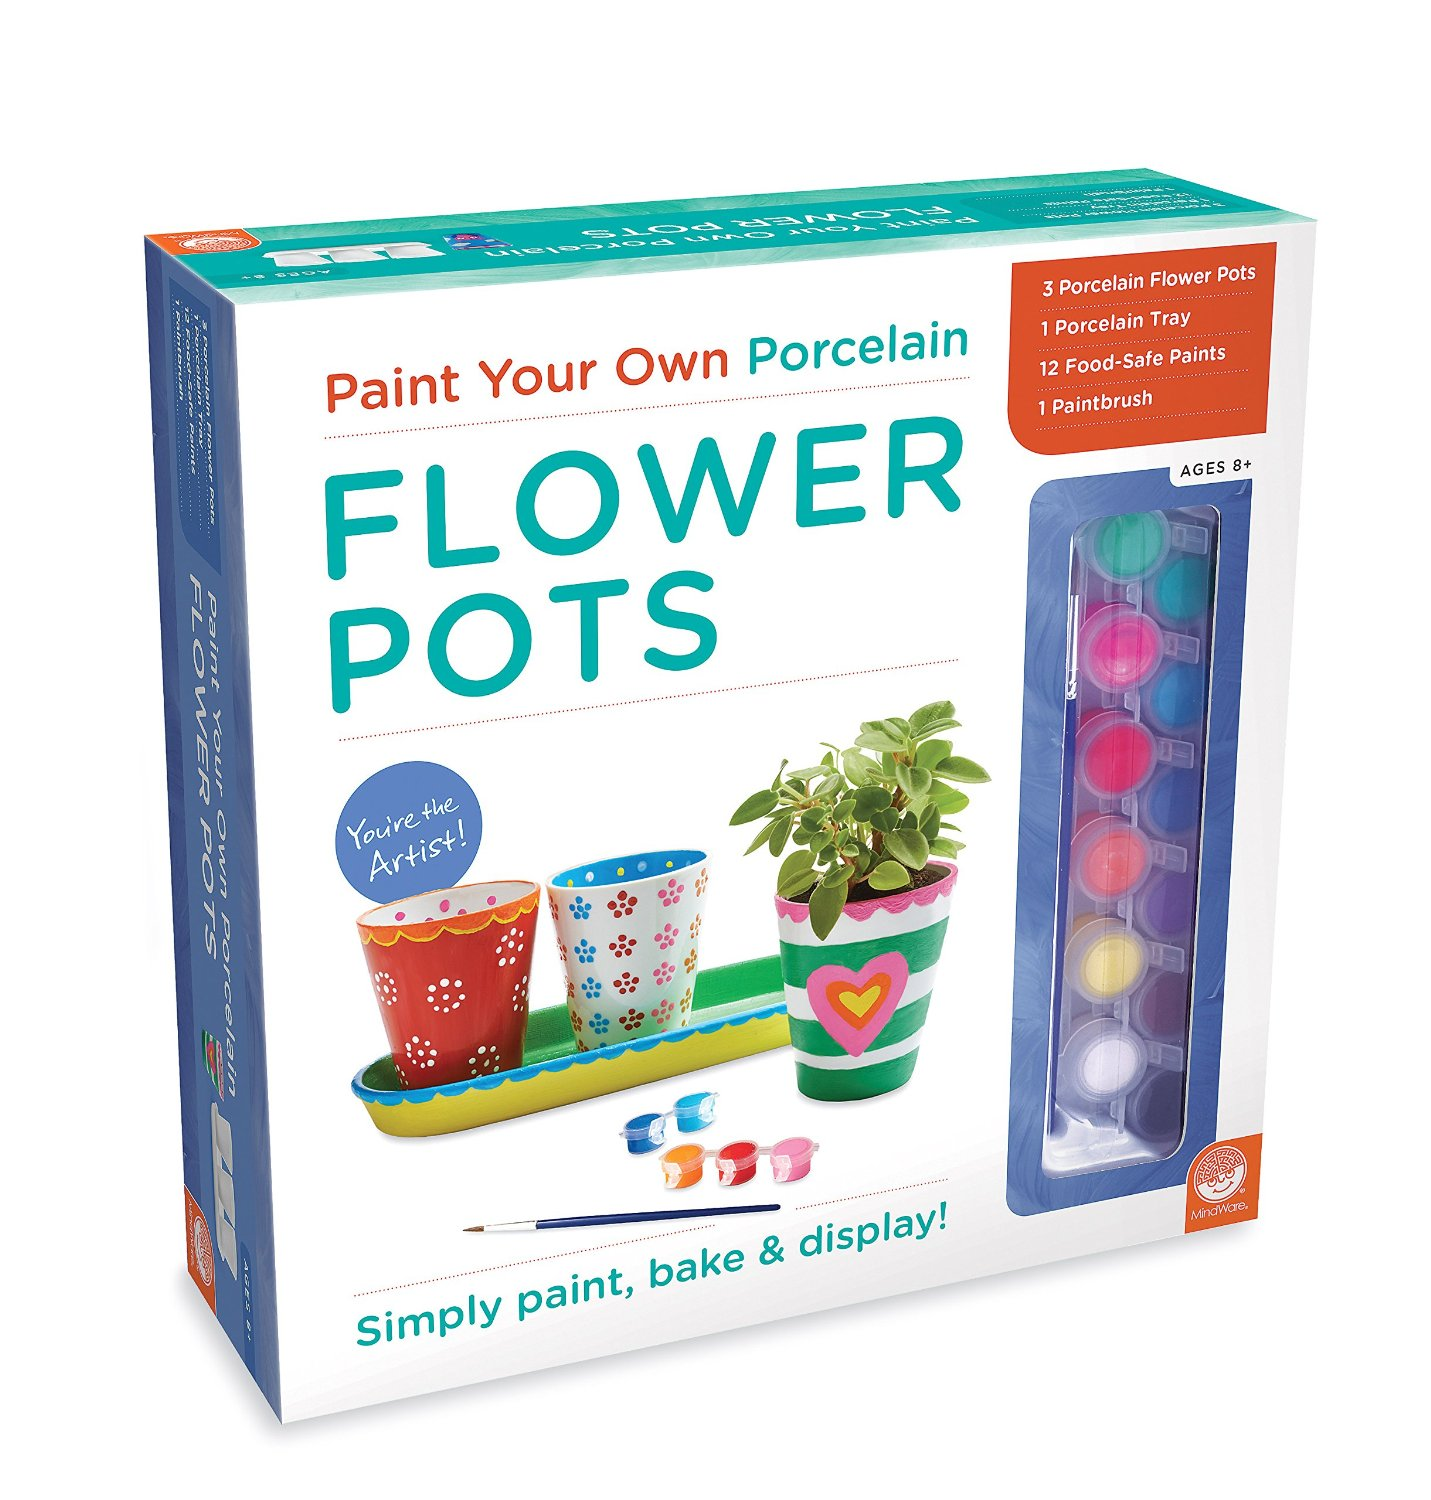 Paint Your Own FlowerPots